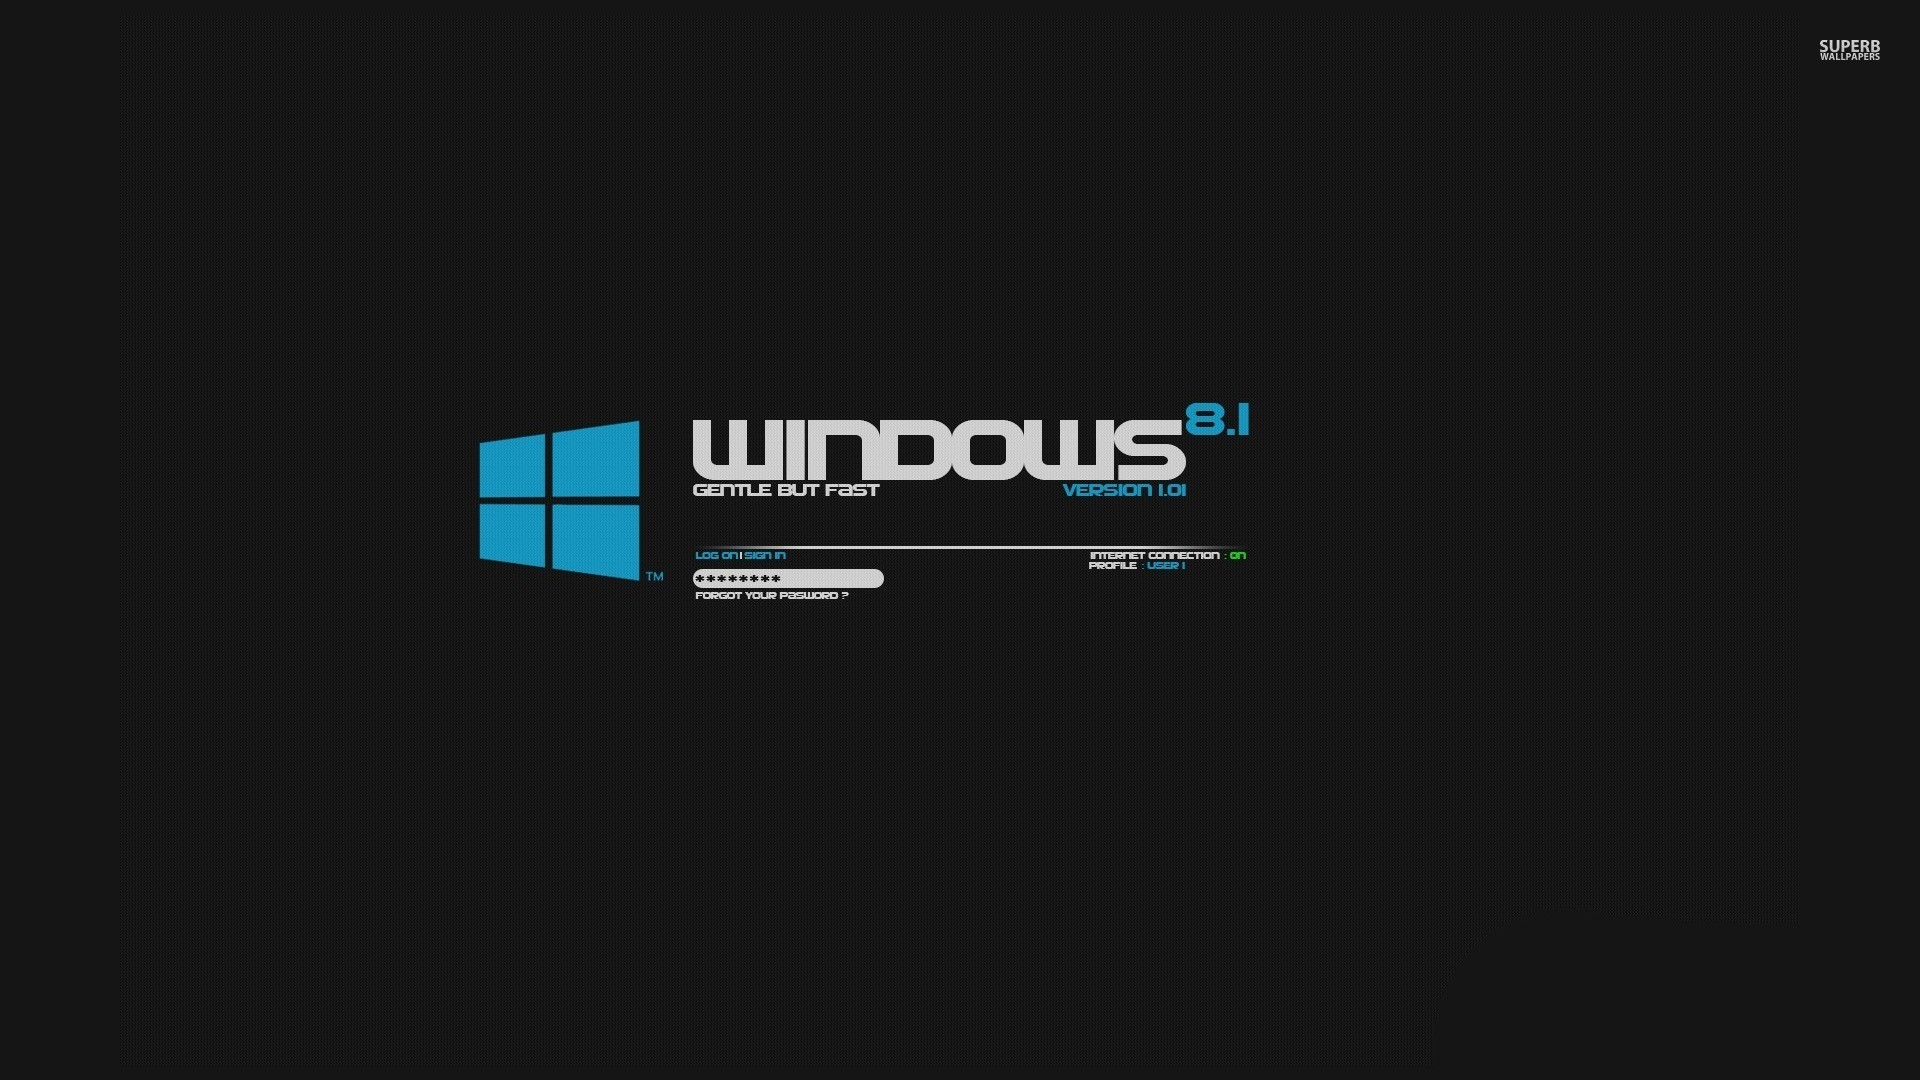 Windows 8.1 in Black Background Wallpaper – MixHD wallpapers